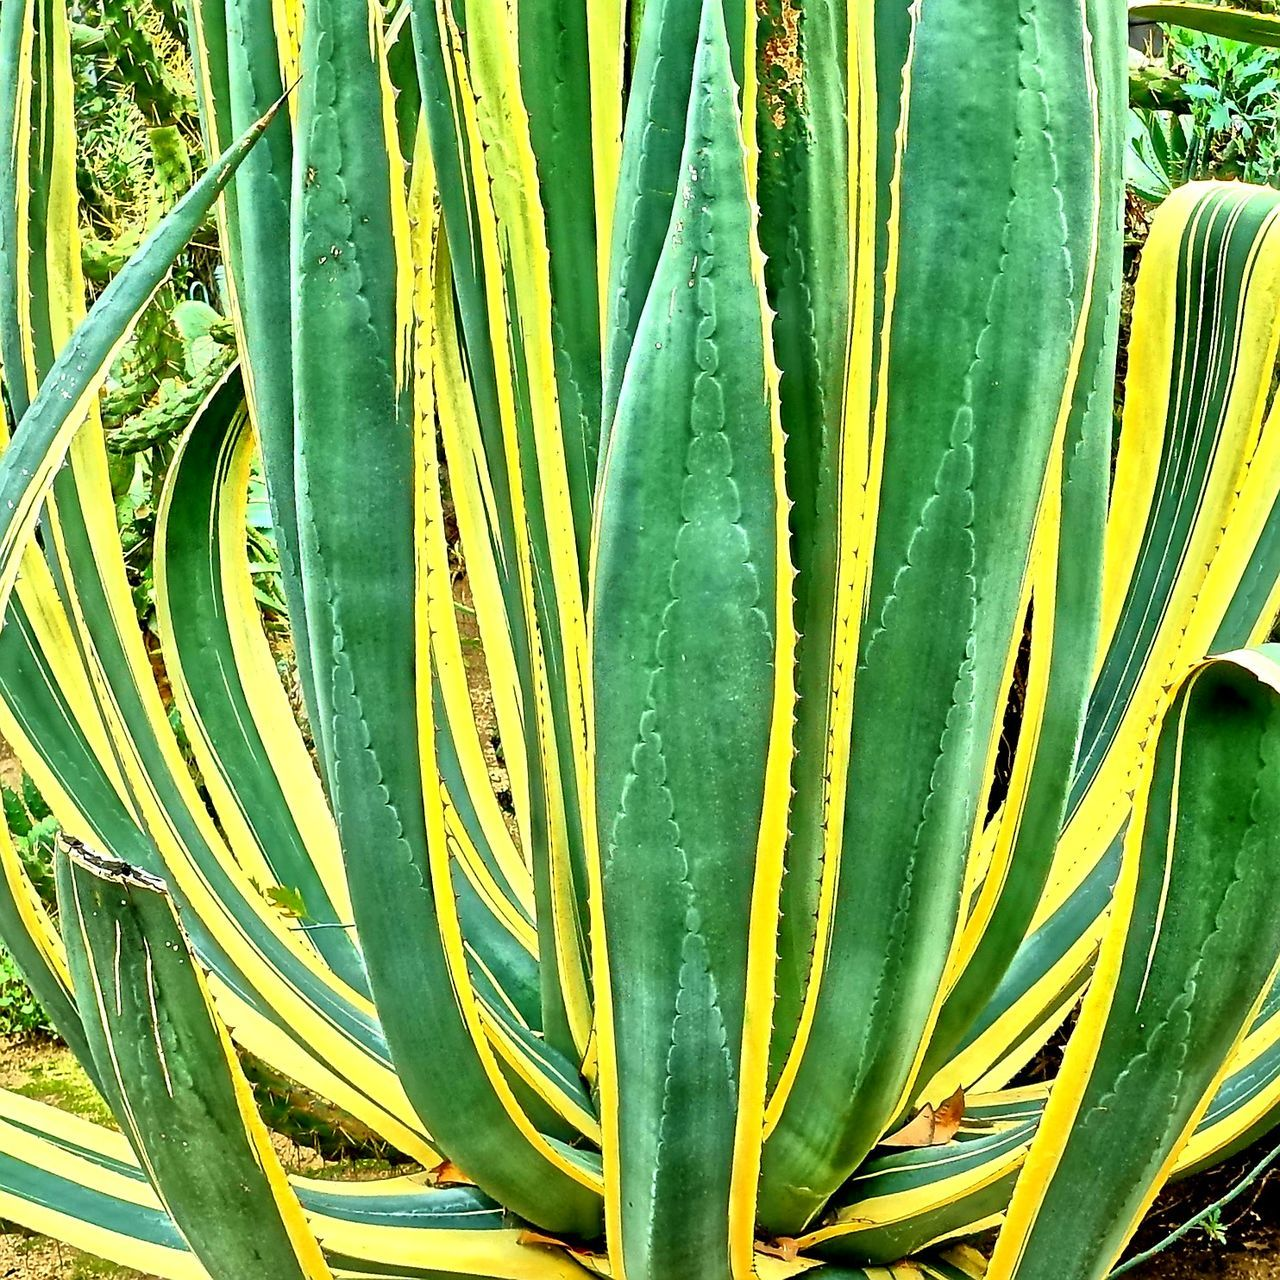 growth, green color, aloe vera plant, plant, aloe, nature, no people, cactus, beauty in nature, close-up, healthcare and medicine, outdoors, leaf, day